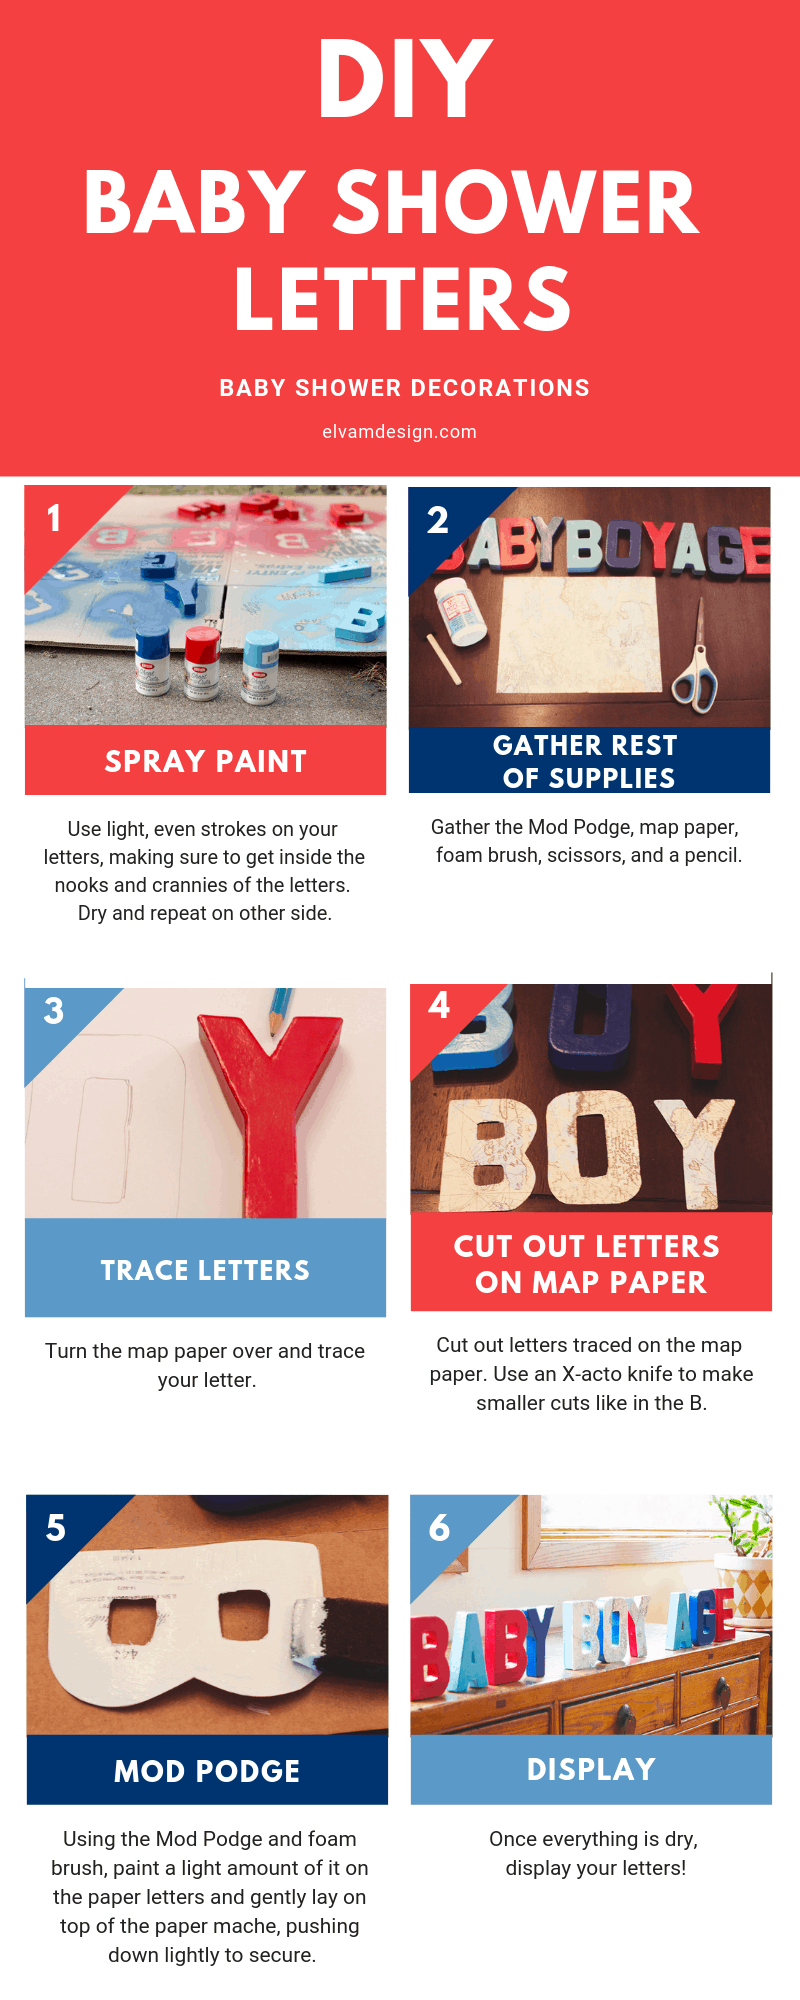 Follow the steps to create these DIY Baby Shower Letters